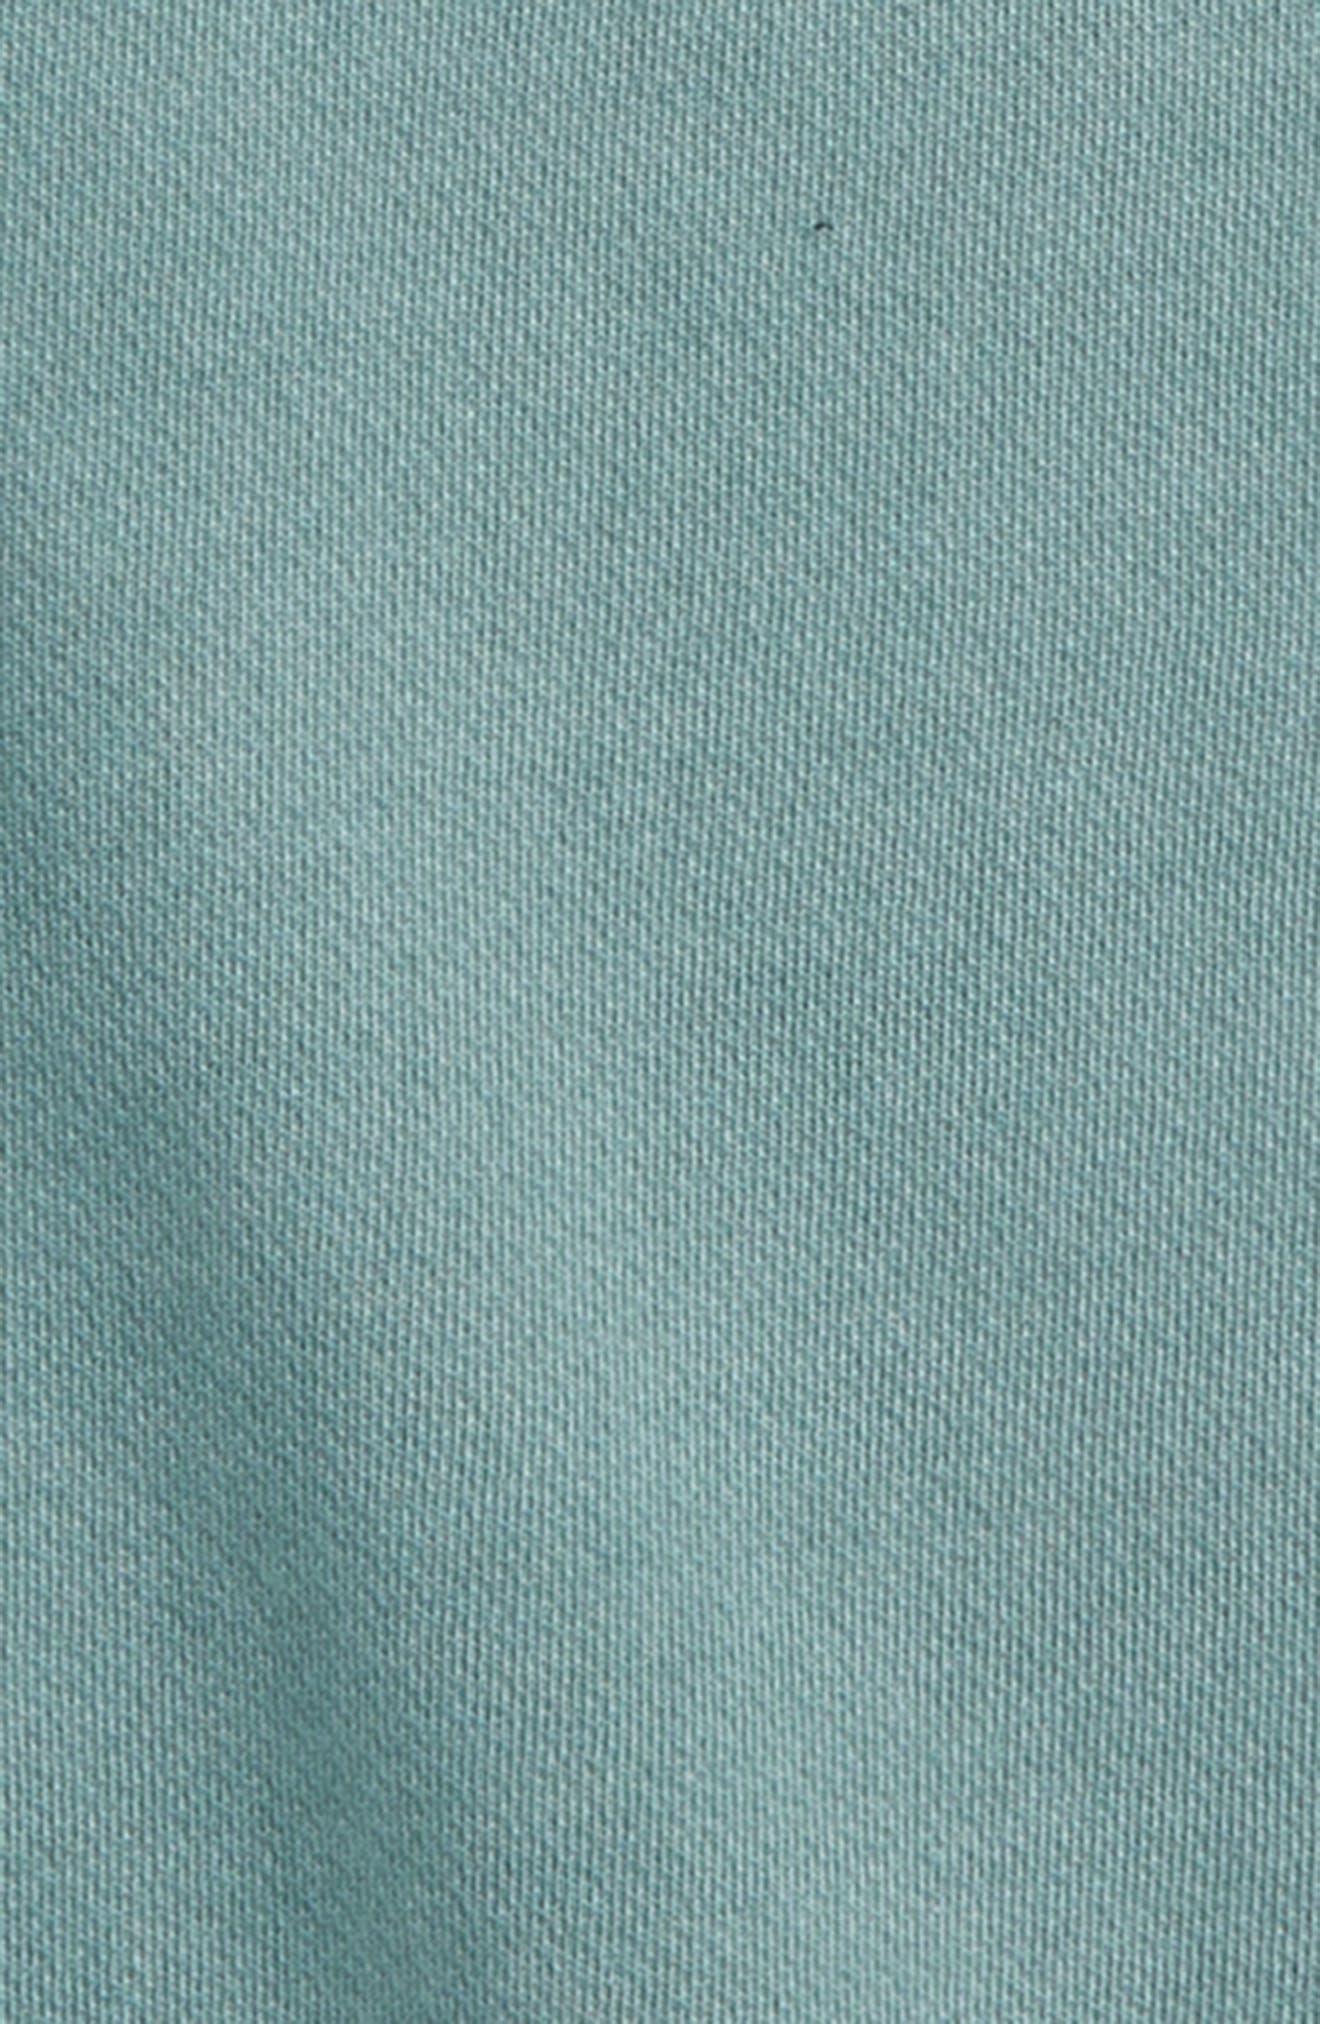 Washed Sweatshirt,                             Alternate thumbnail 2, color,                             Teal Pond